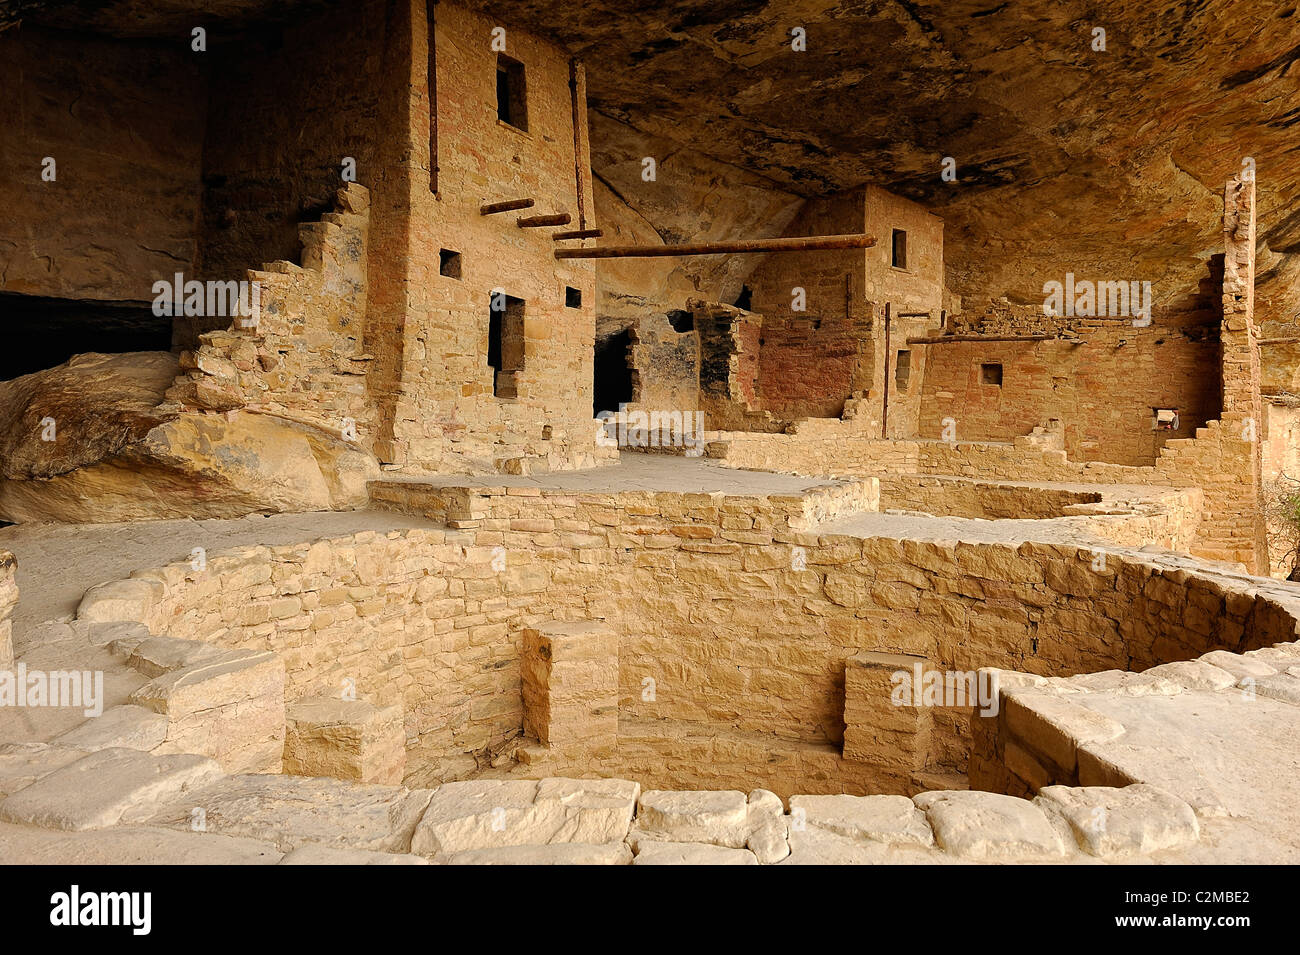 Remnants of kivas in Balcony House, cliff dwelling in Mesa Verde National Park Stock Photo